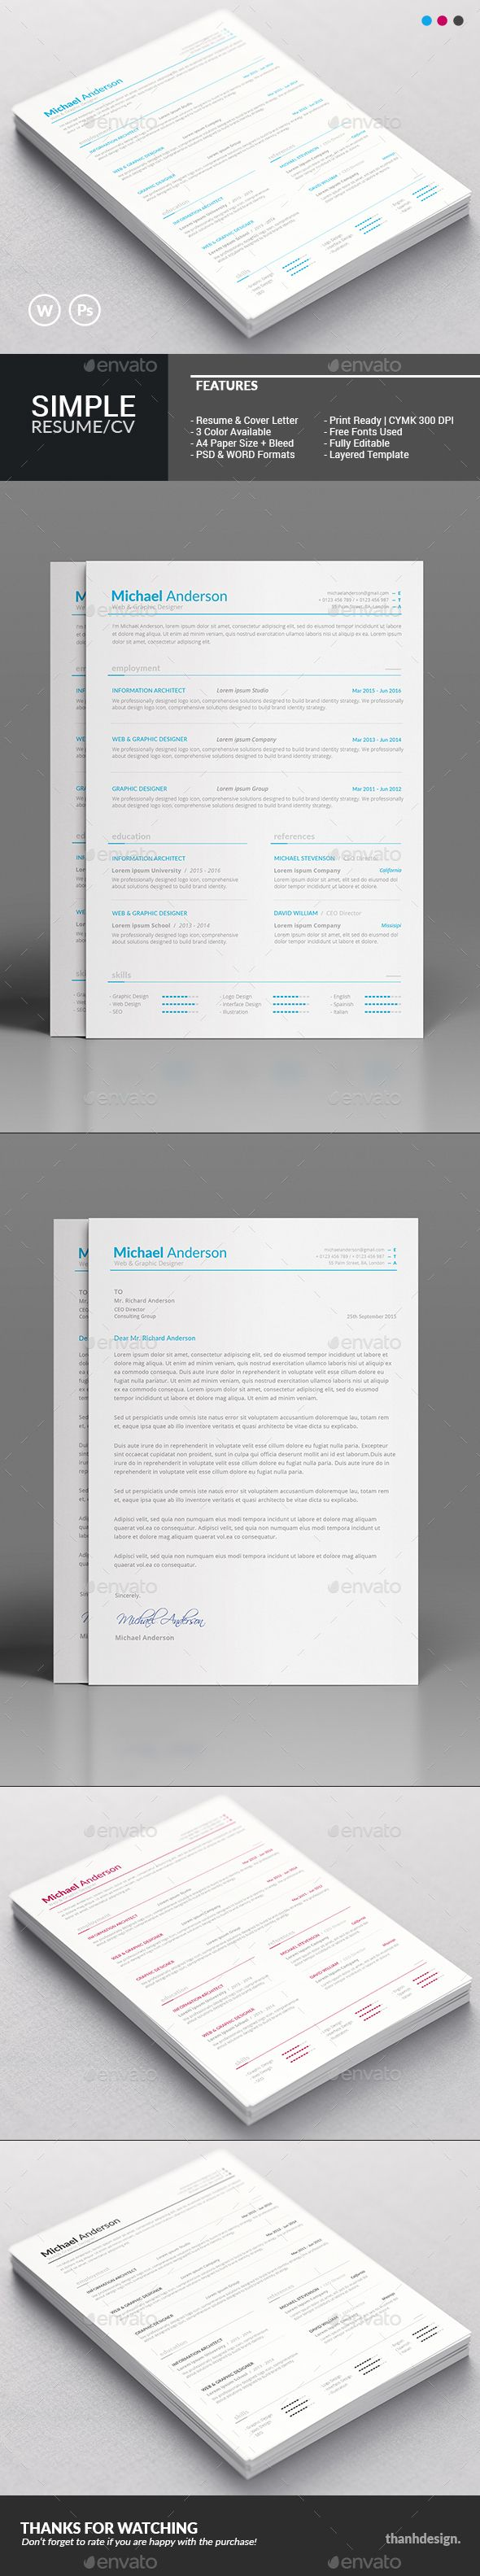 Resume CV & Cover Letter | Cv cover letter, Resume cv and Cover ...